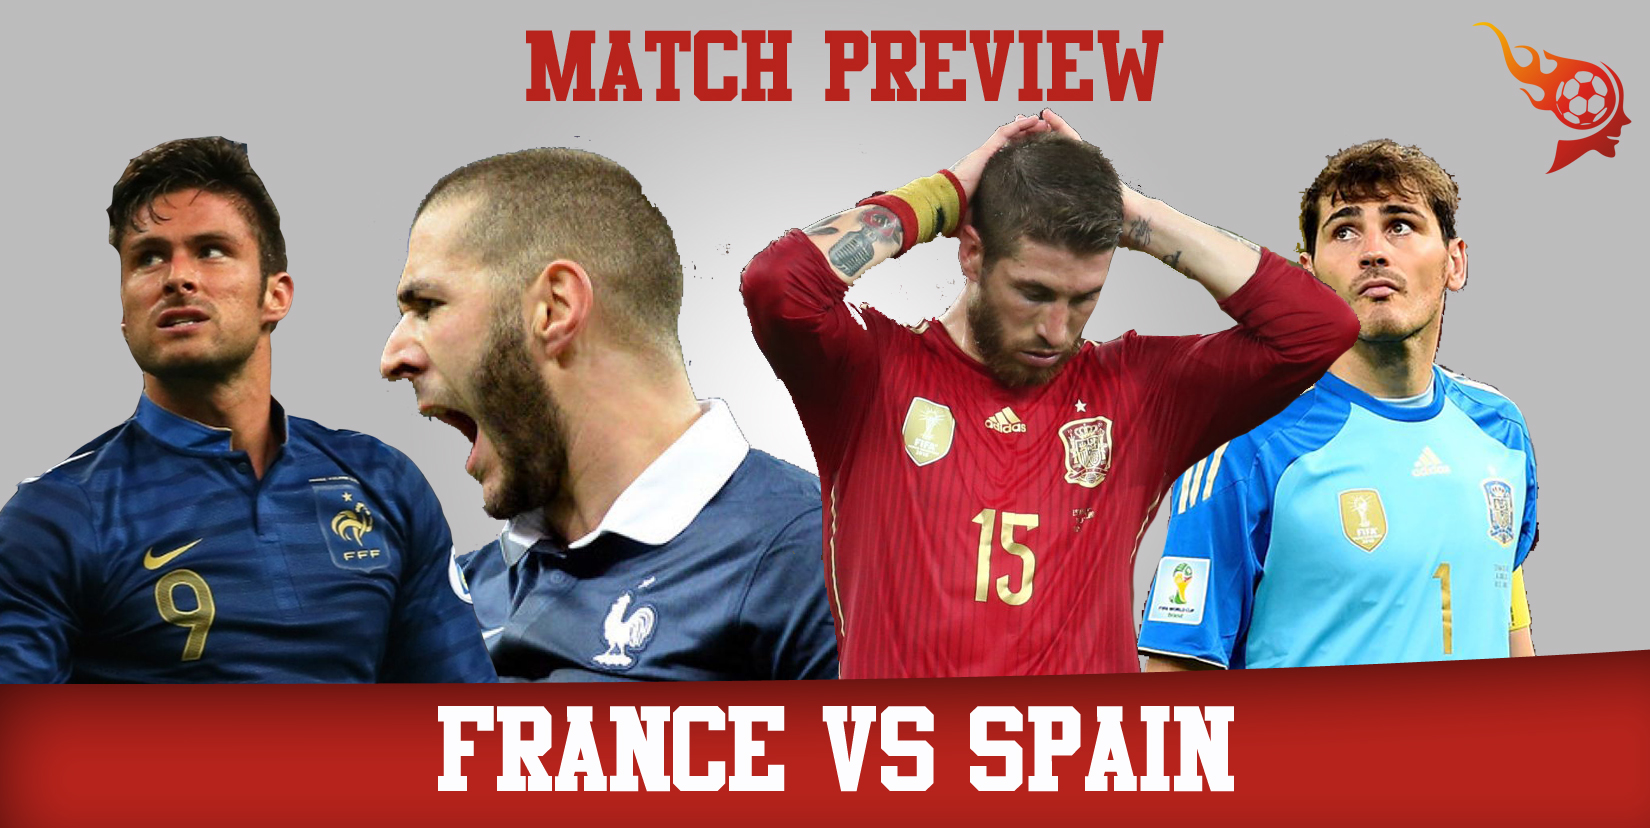 France vs spain in the orgyf70 7